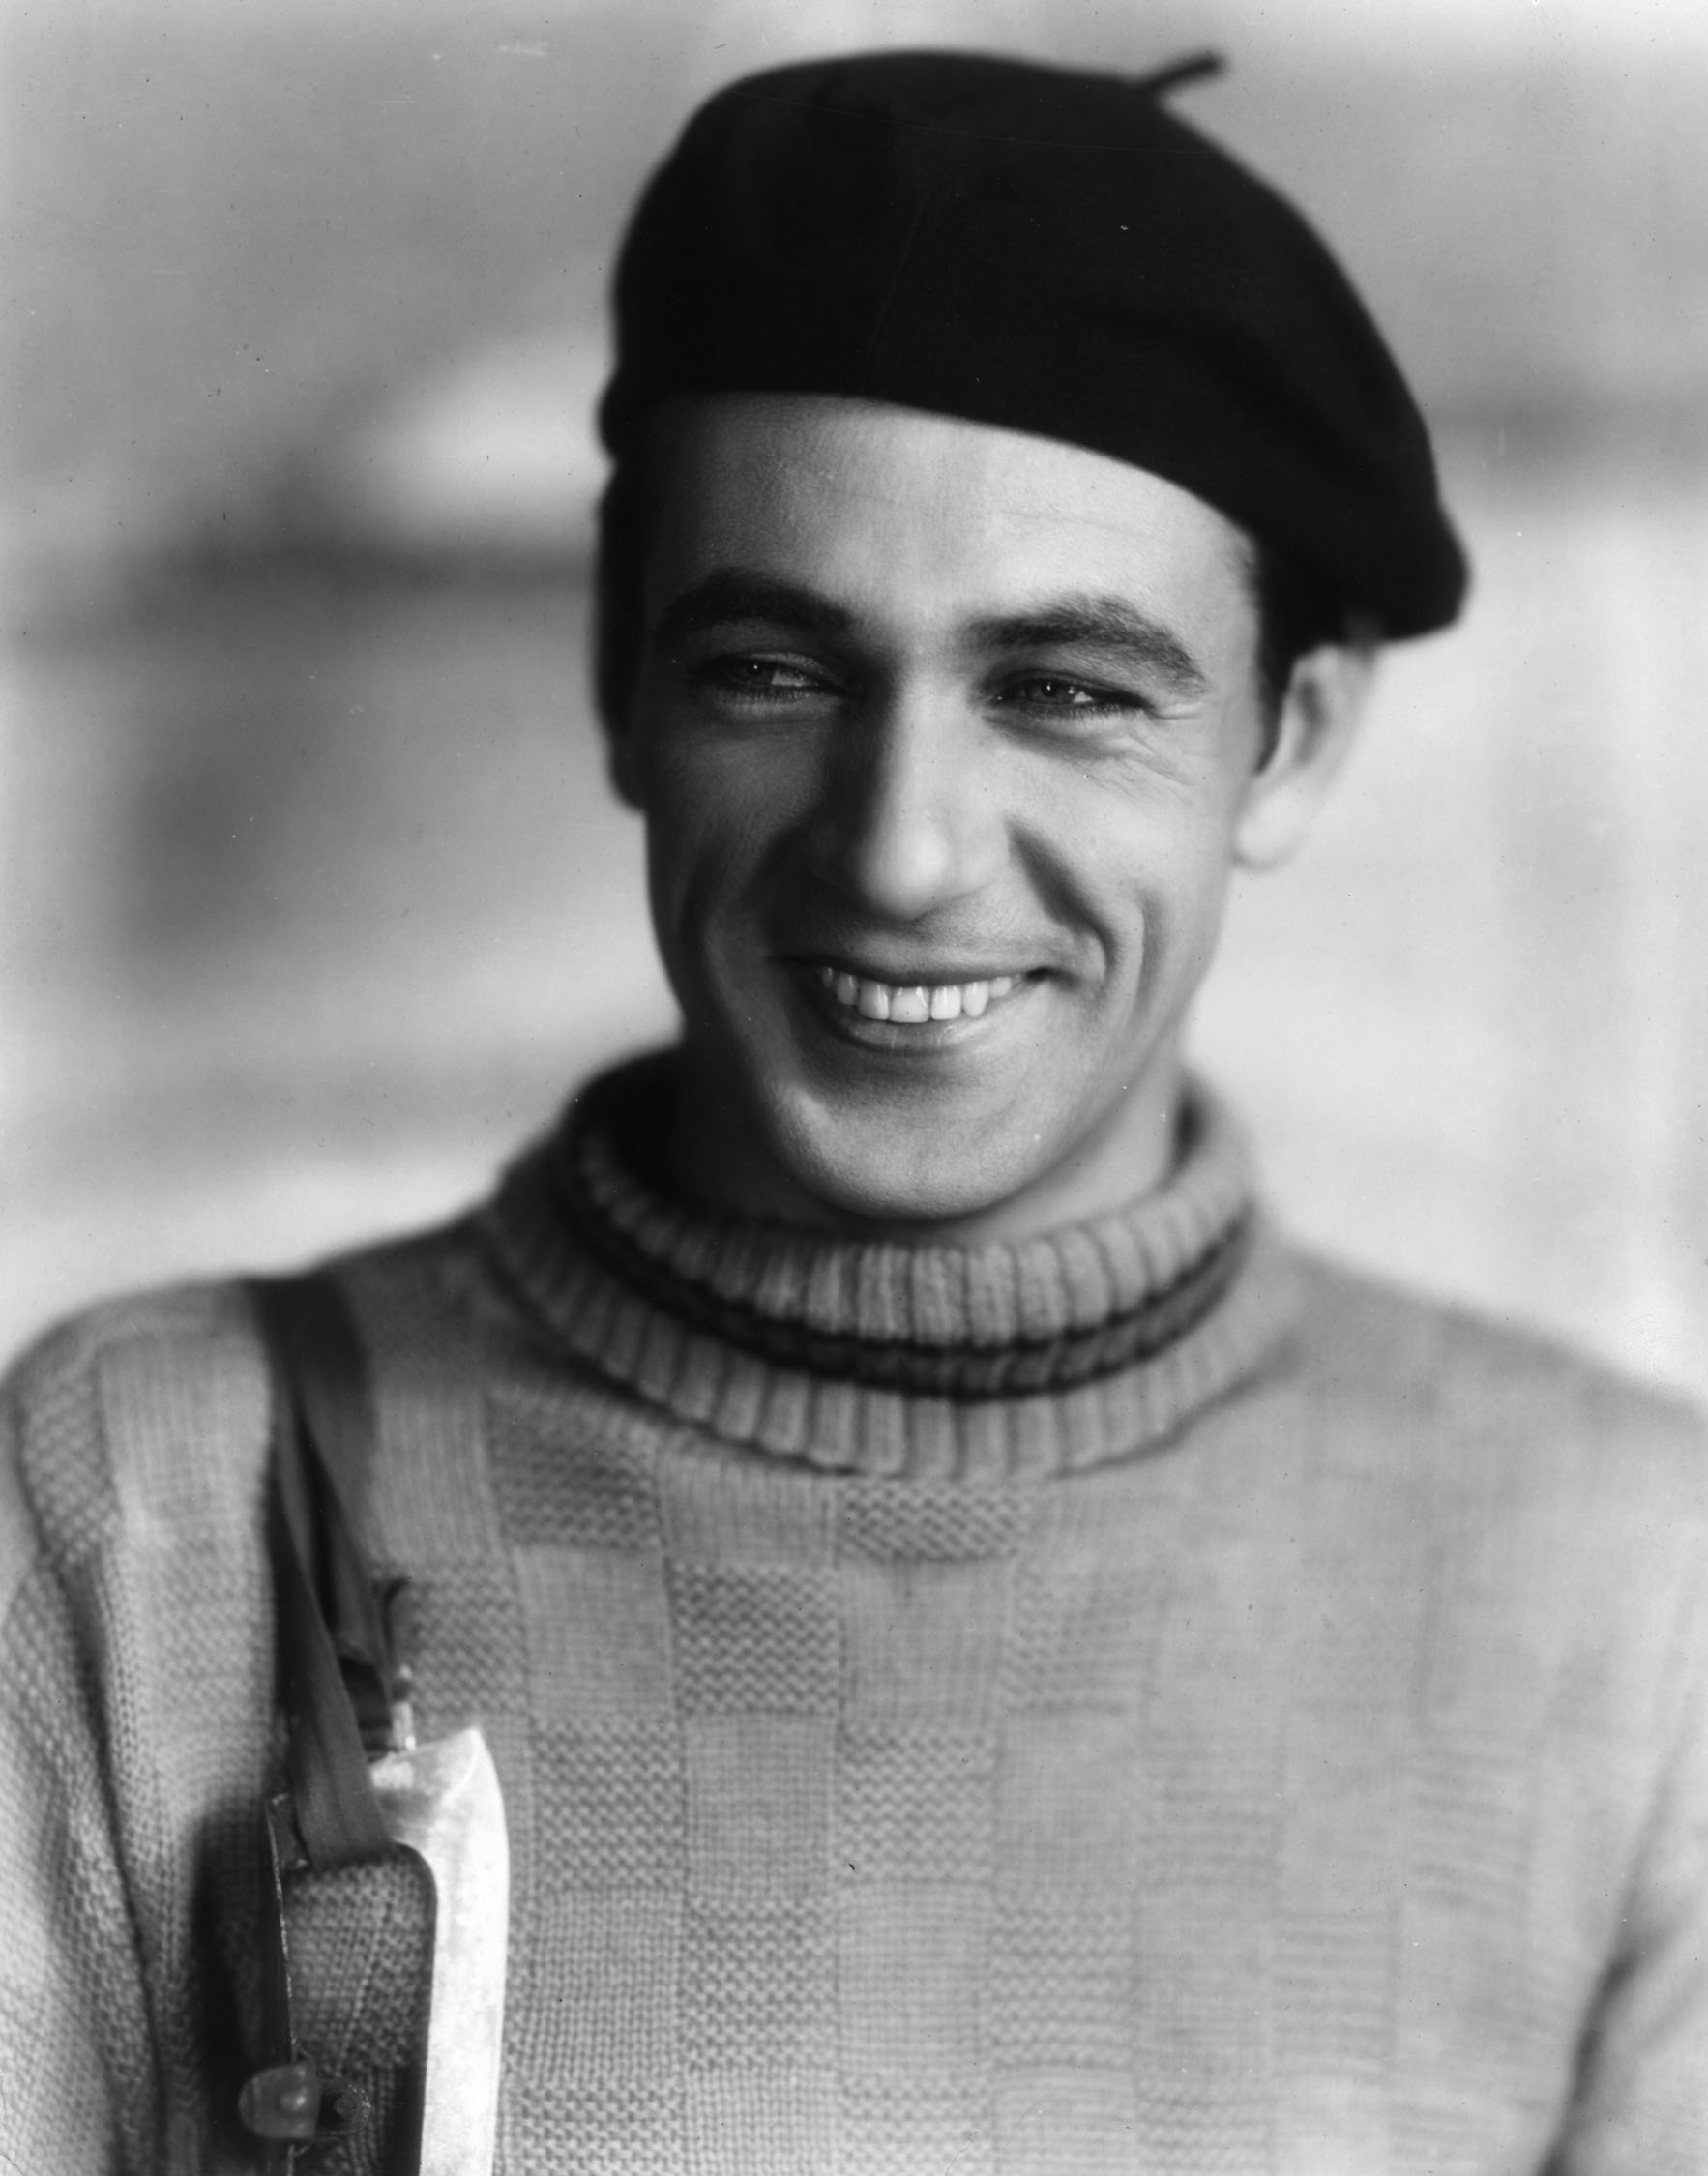 Gary Cooper, circa 1928, photographed by Eugene Robert Richee.